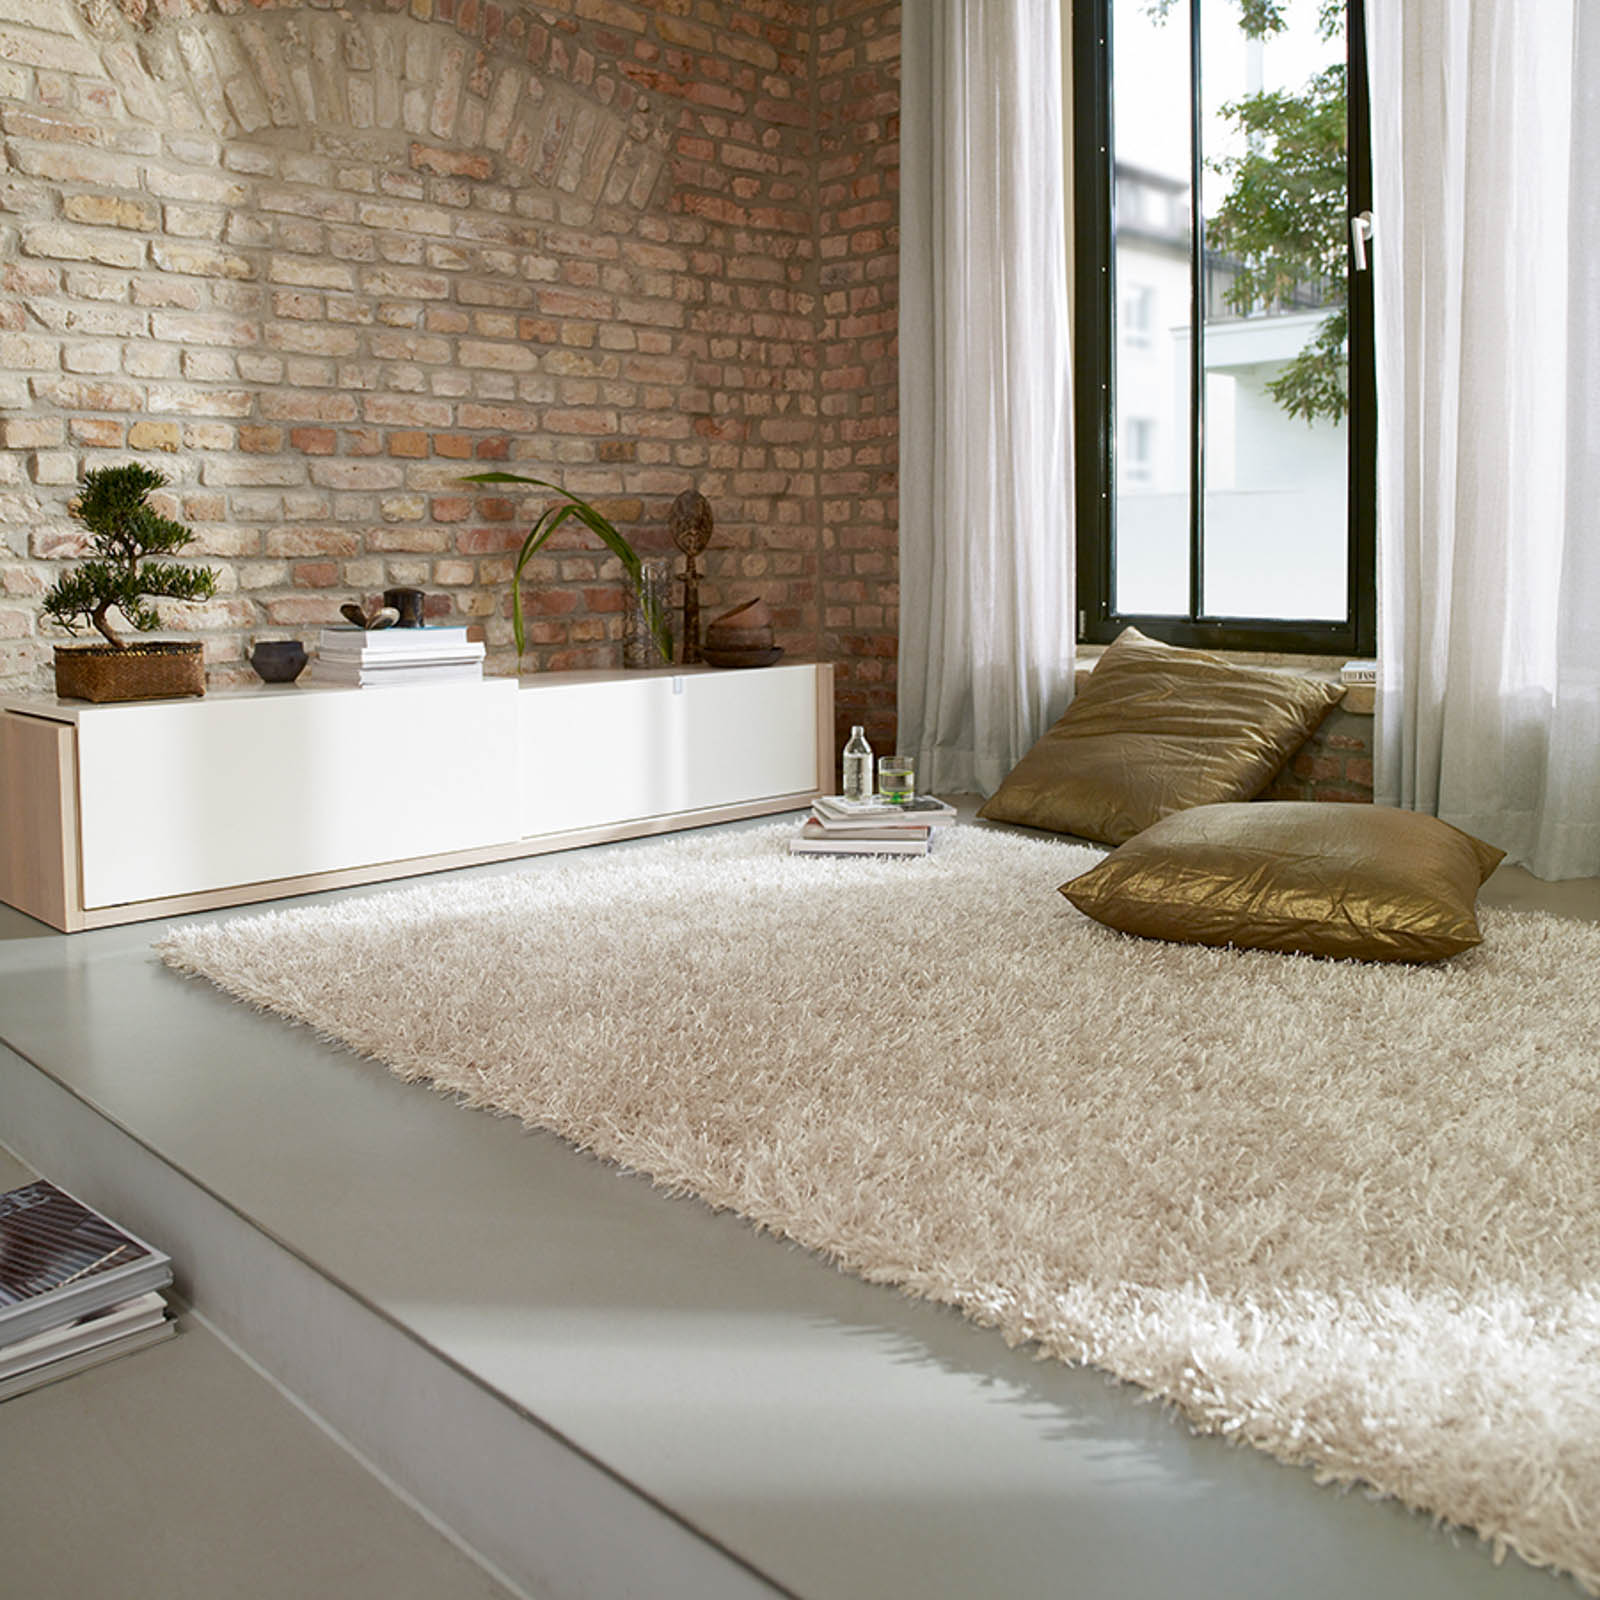 Esprit Cool Glamour Rugs 9001 01 White